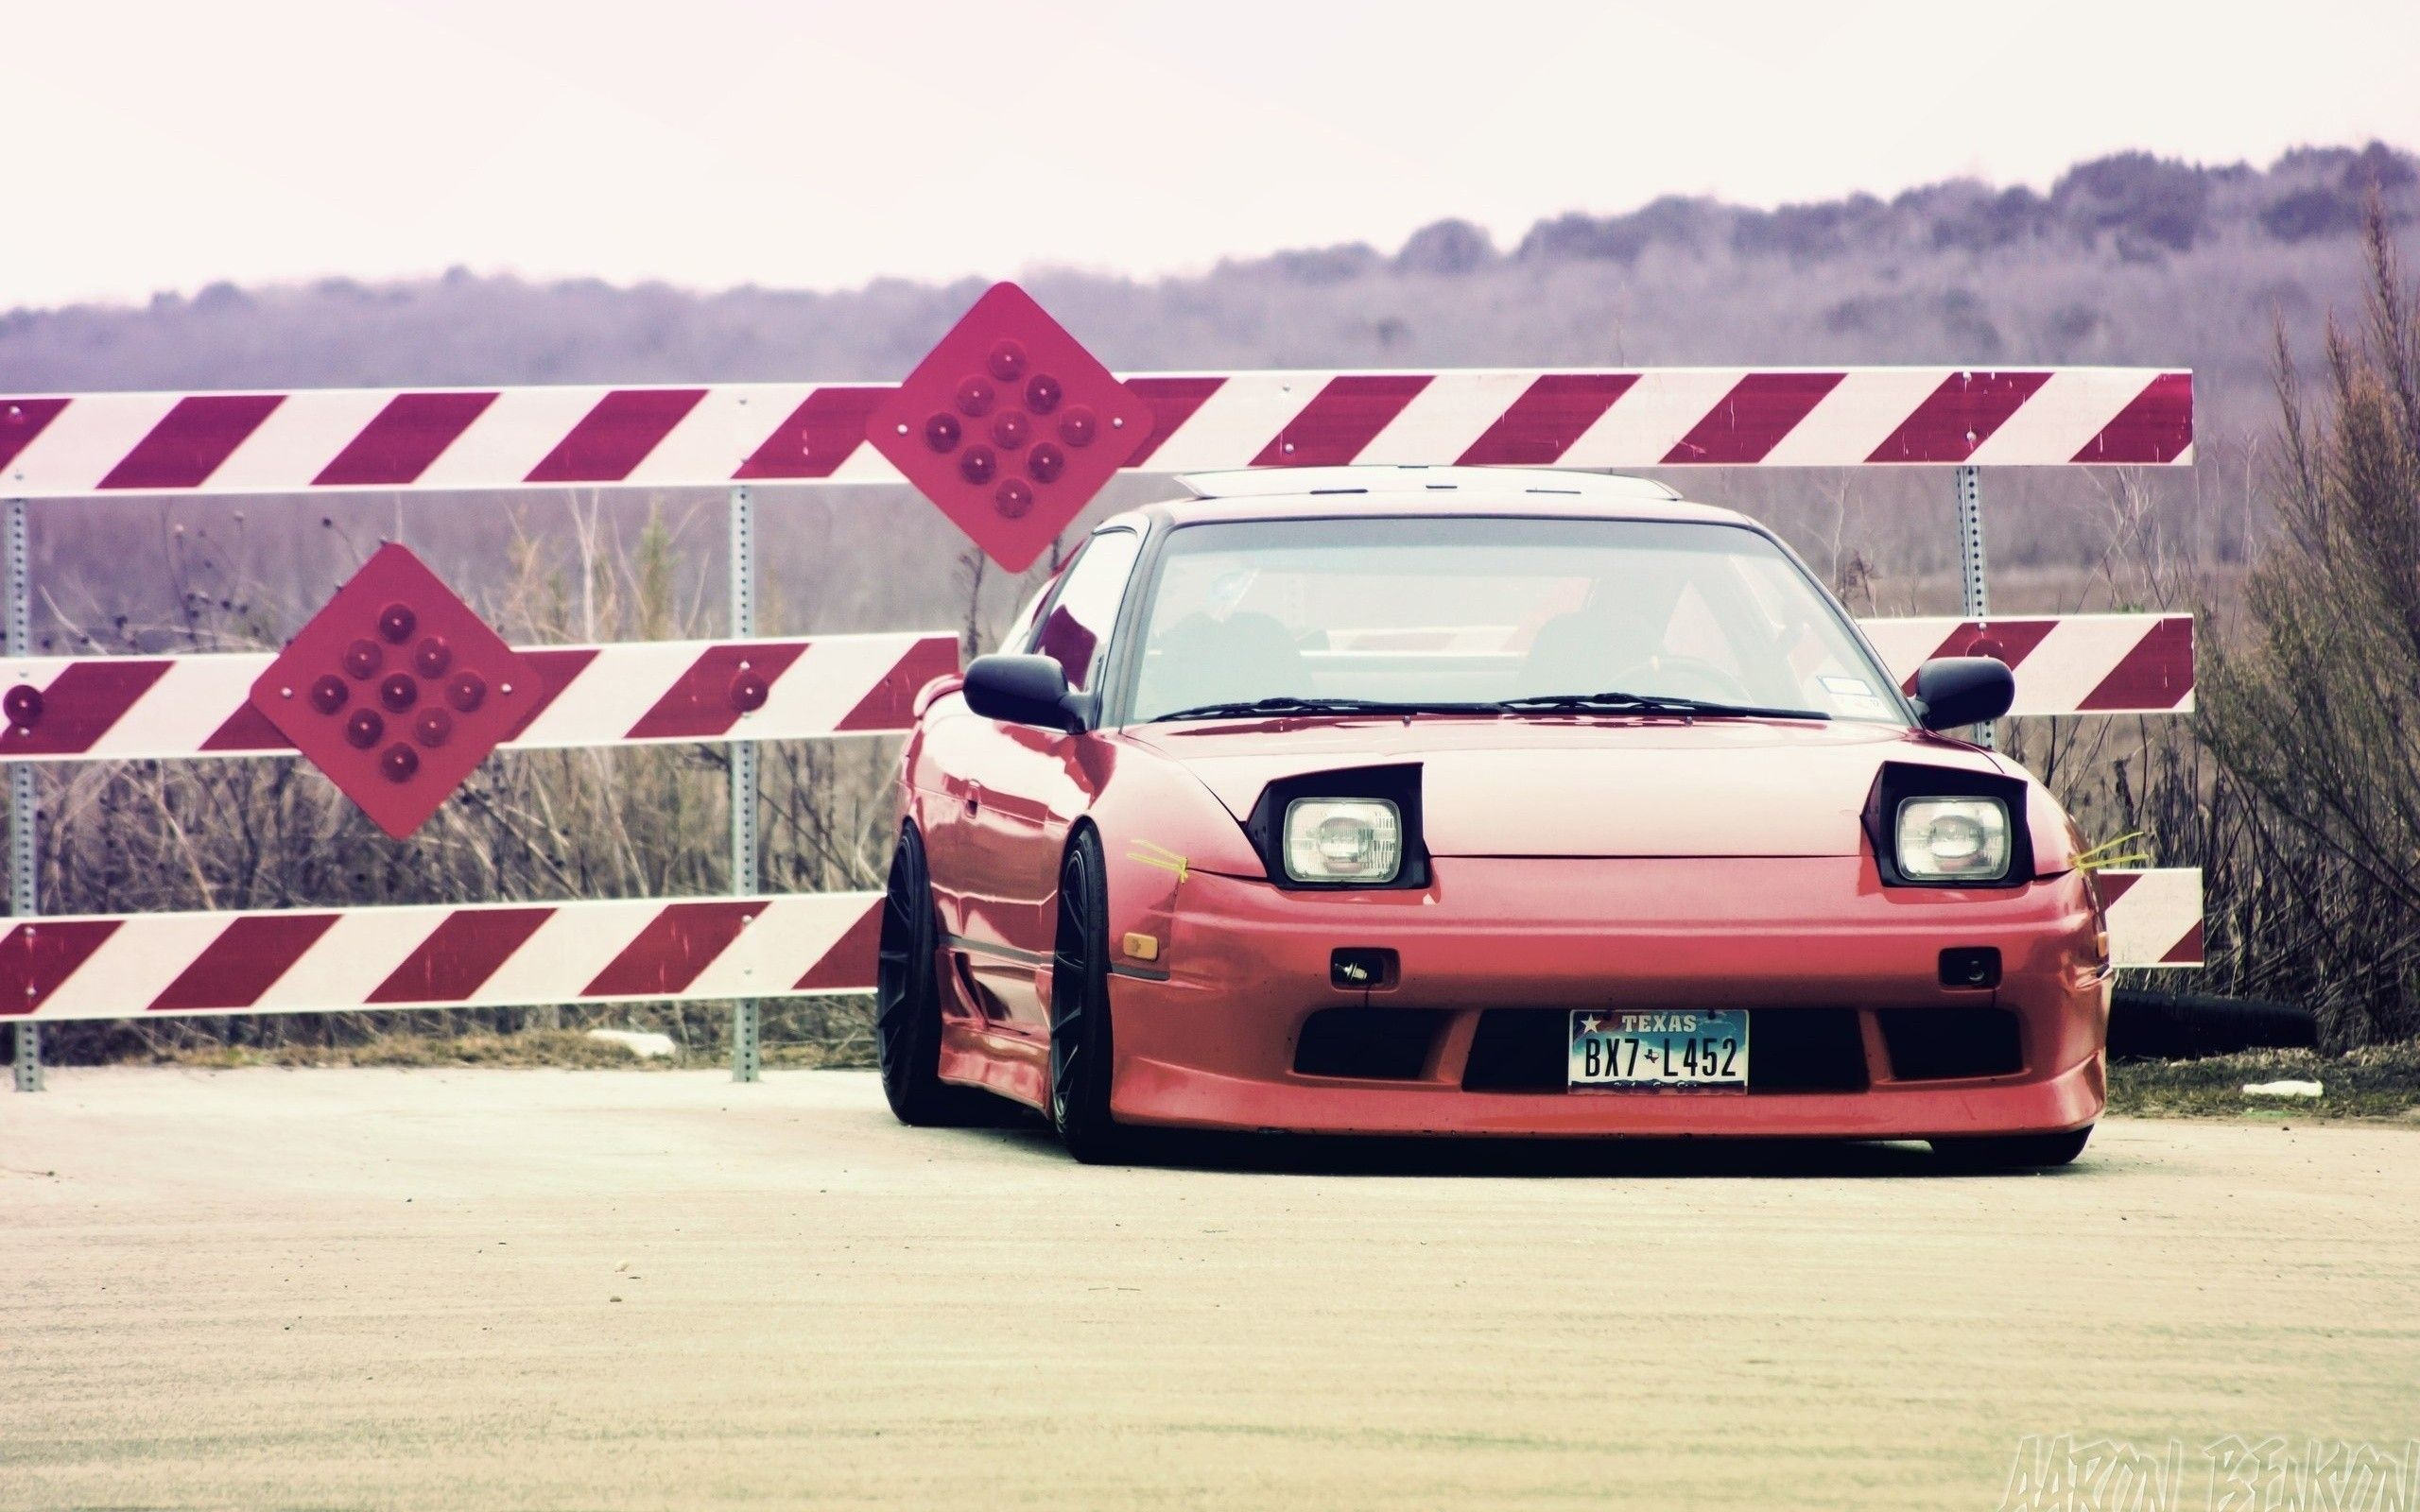 S13 Wallpapers – Wallpaper Cave